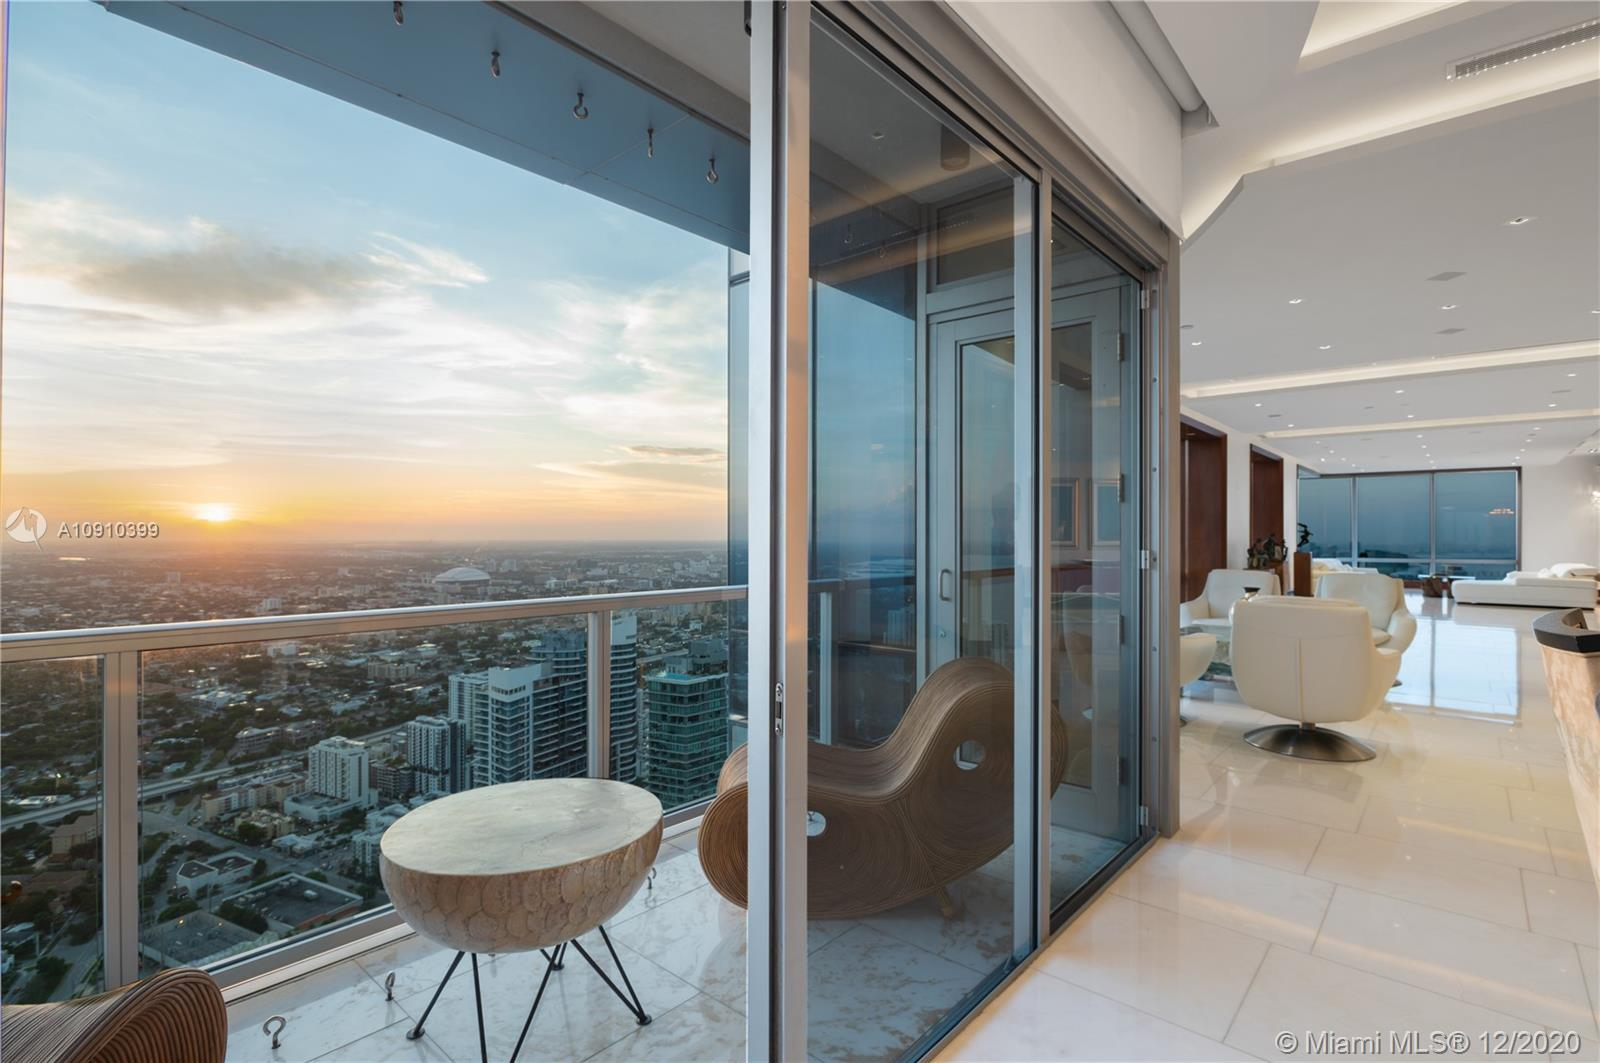 Welcome to exquisite living at this penthouse residence. From corner to corner of the Four Seasons, this expansive unit offers panoramic 180 degree vistas of Key Biscayne, Biscayne Bay, Port of Miami, Miami Beach and all cities in between; captivating views from anywhere in the unit, magnificent sunsets! 3 units combined have created 6,000+/- SF of palatial living. Lapis Lazuli expansive Snaidero kitchen with Miele appliances; floating Onyx bar w/ temp-controlled wine storage; 2 balconies; oversized master, his/hers separate walk-in custom closets; $1 million+ in custom wood work. 4 parking spaces, 6 memberships to Equinox & all the 5-star amenities & world-class service for which the iconic Four Seasons is recognized. Marketed exclusively by Techrin Hijazi.